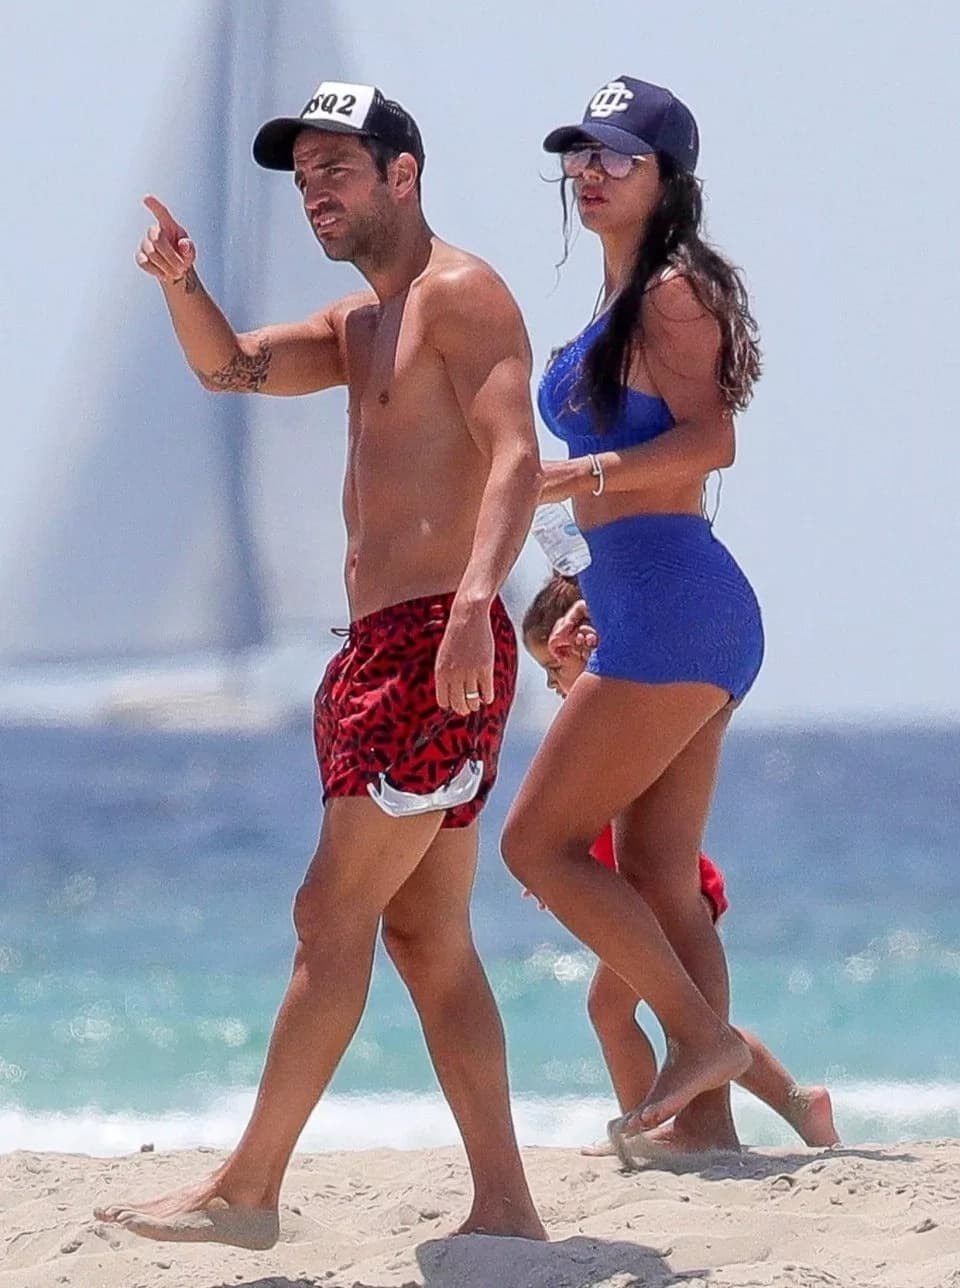 Fabregas caught relaxing with his wife on the beach after World Cup blackout (Photos)